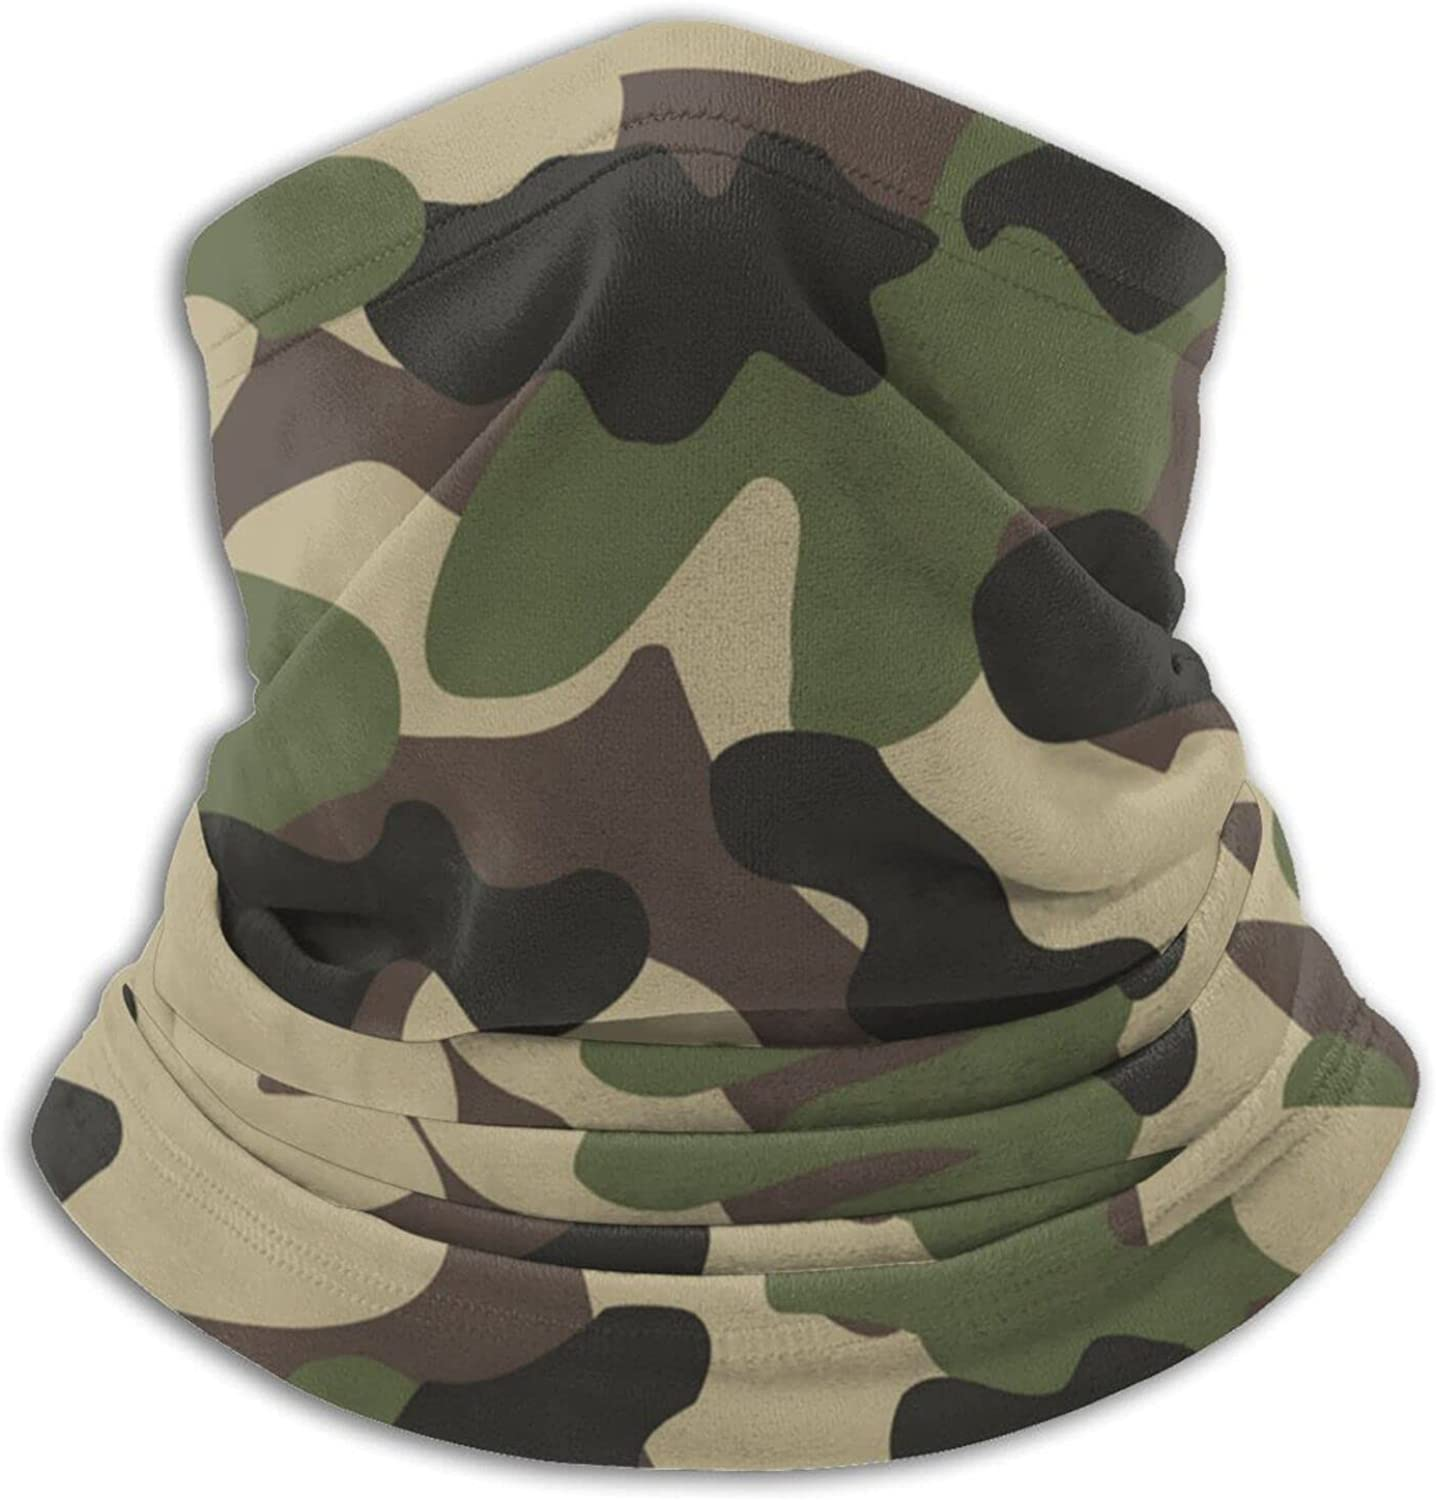 Woodland camo green unisex winter neck gaiter face cover mask, windproof balaclava scarf for fishing, running & hiking